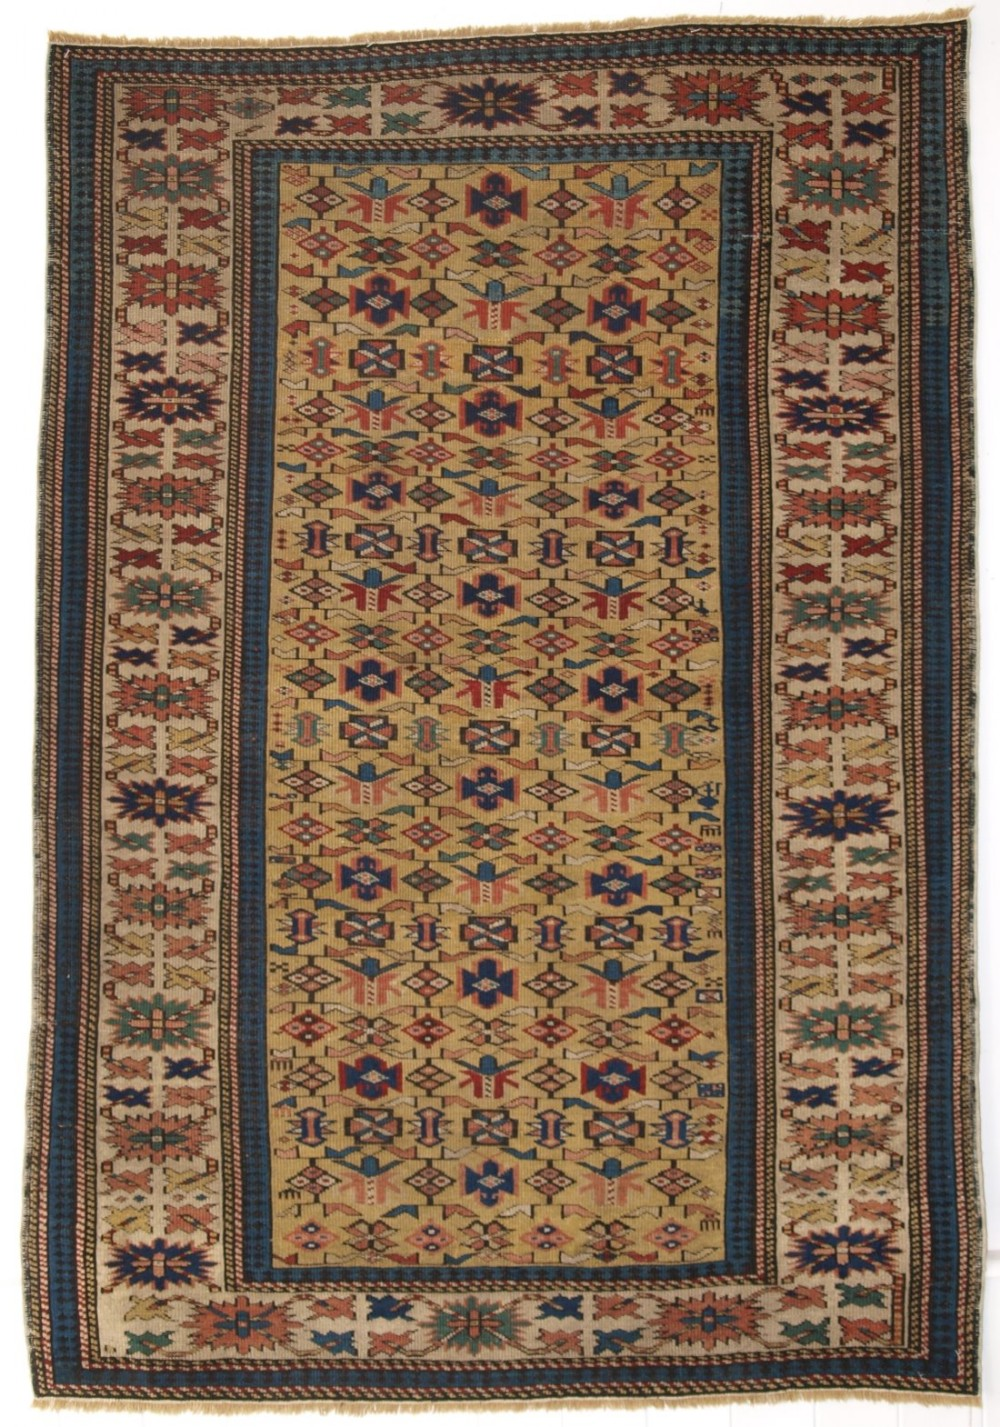 antique caucasian kuba rug with yellow ground very fine weave circa 1880